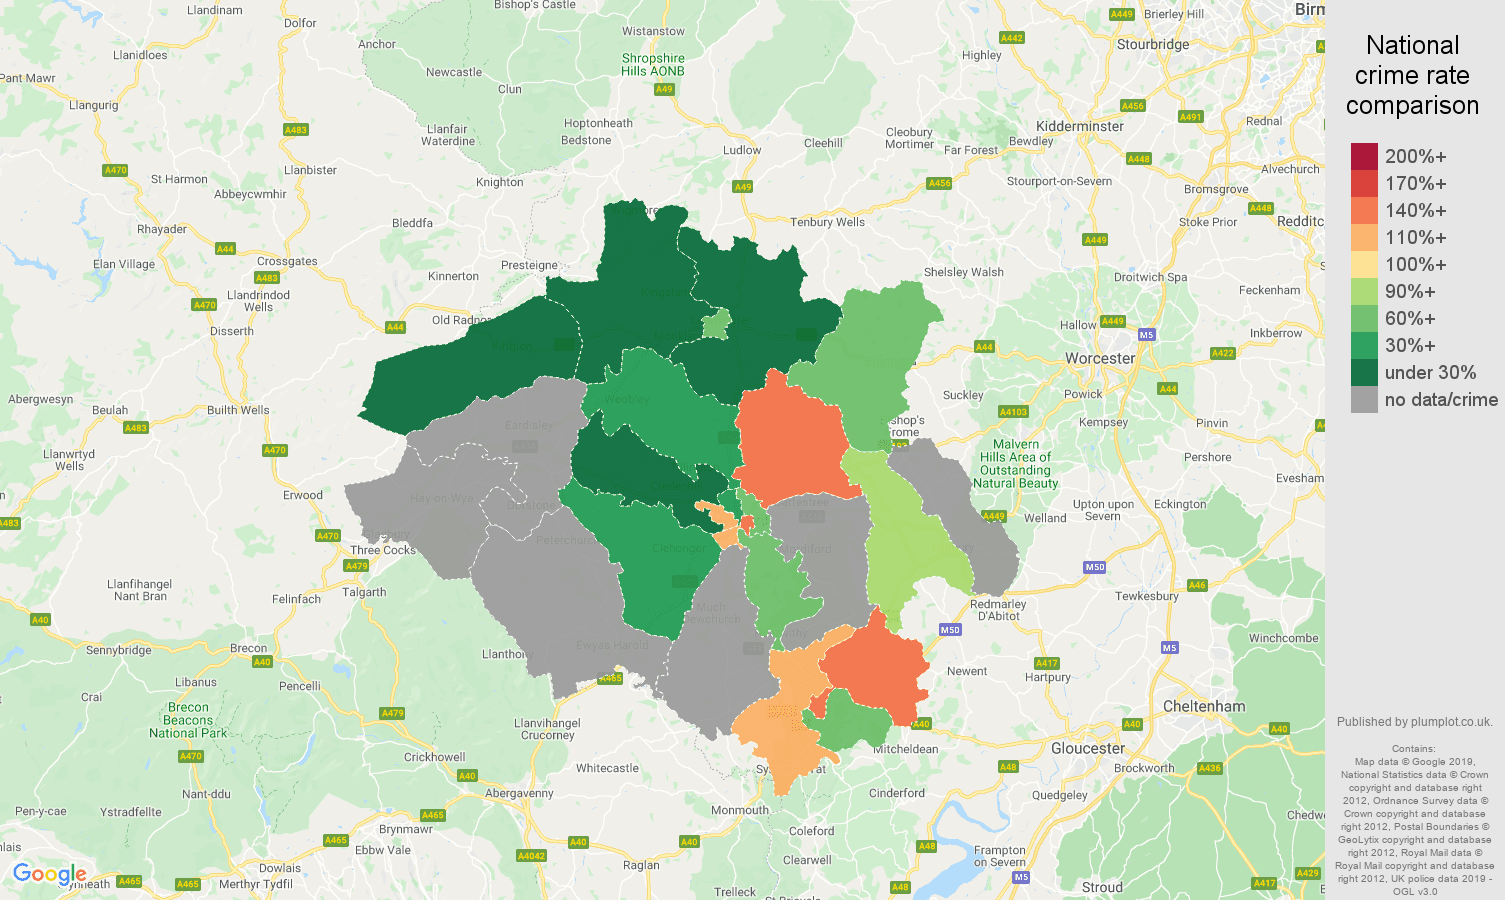 Hereford possession of weapons crime rate comparison map